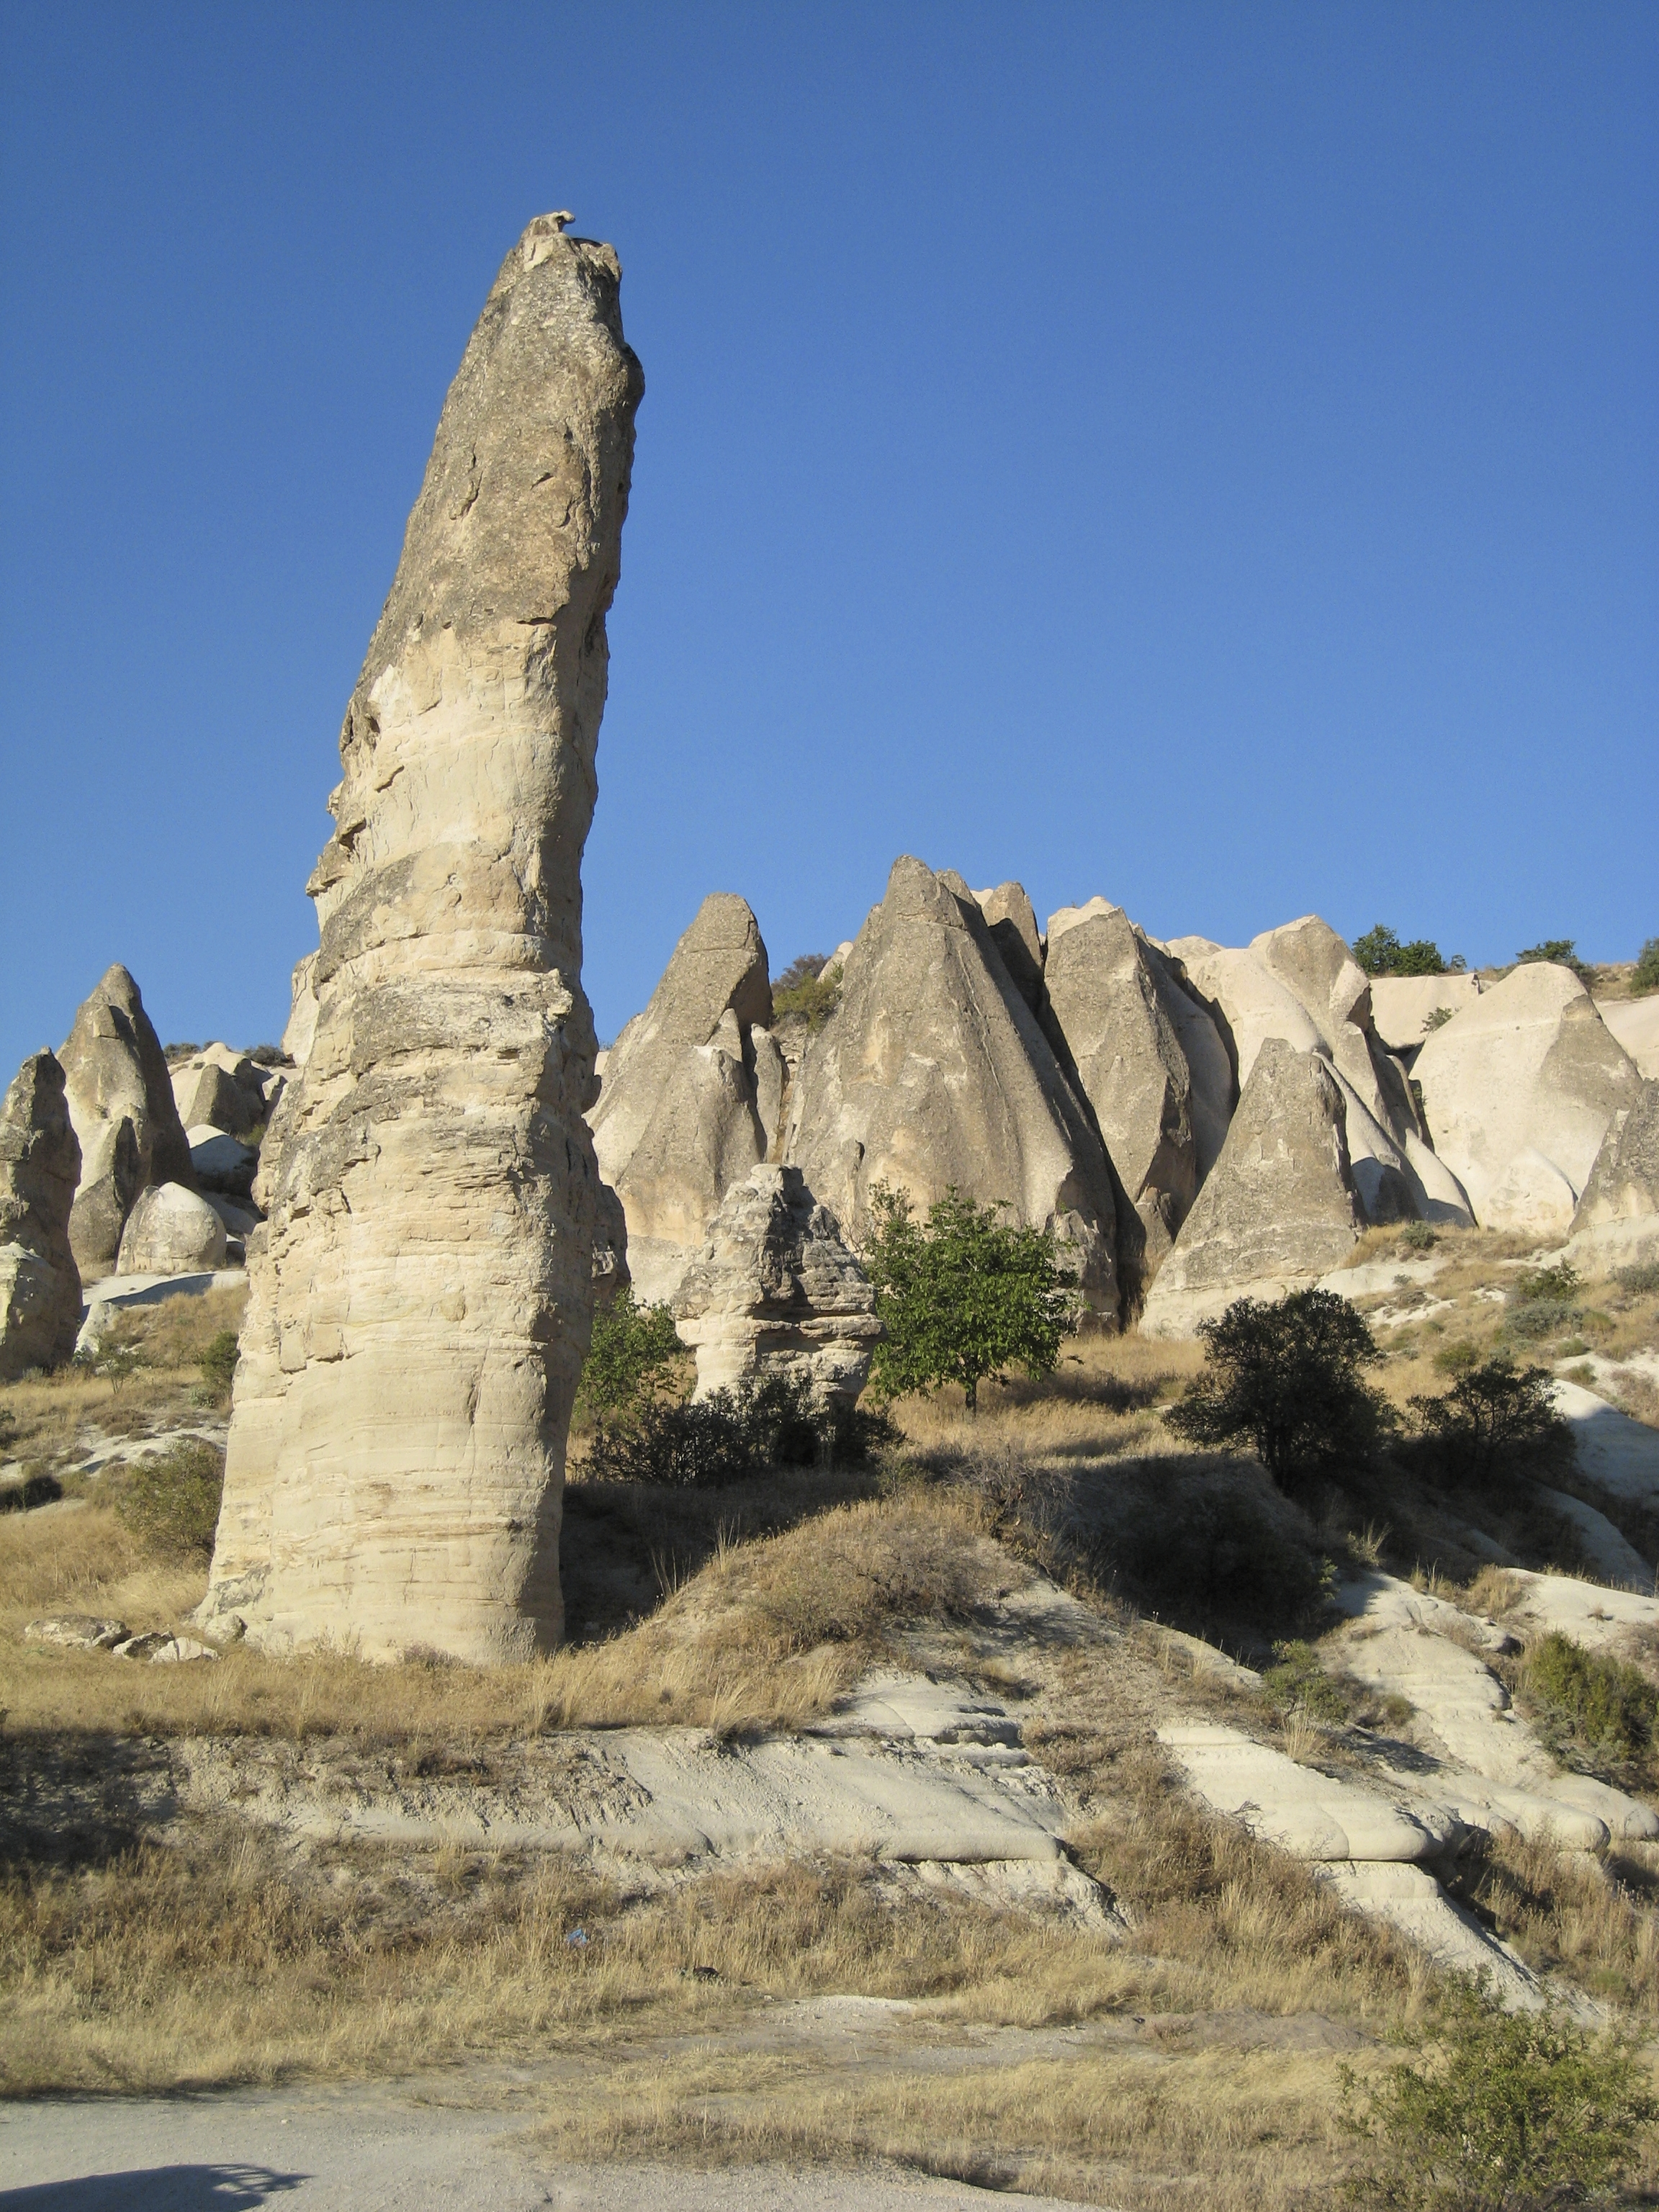 Fairy chimney rock formations, Goreme, Cappadocia Turkey 8.jpg - Goreme, Cappadocia, Turkey